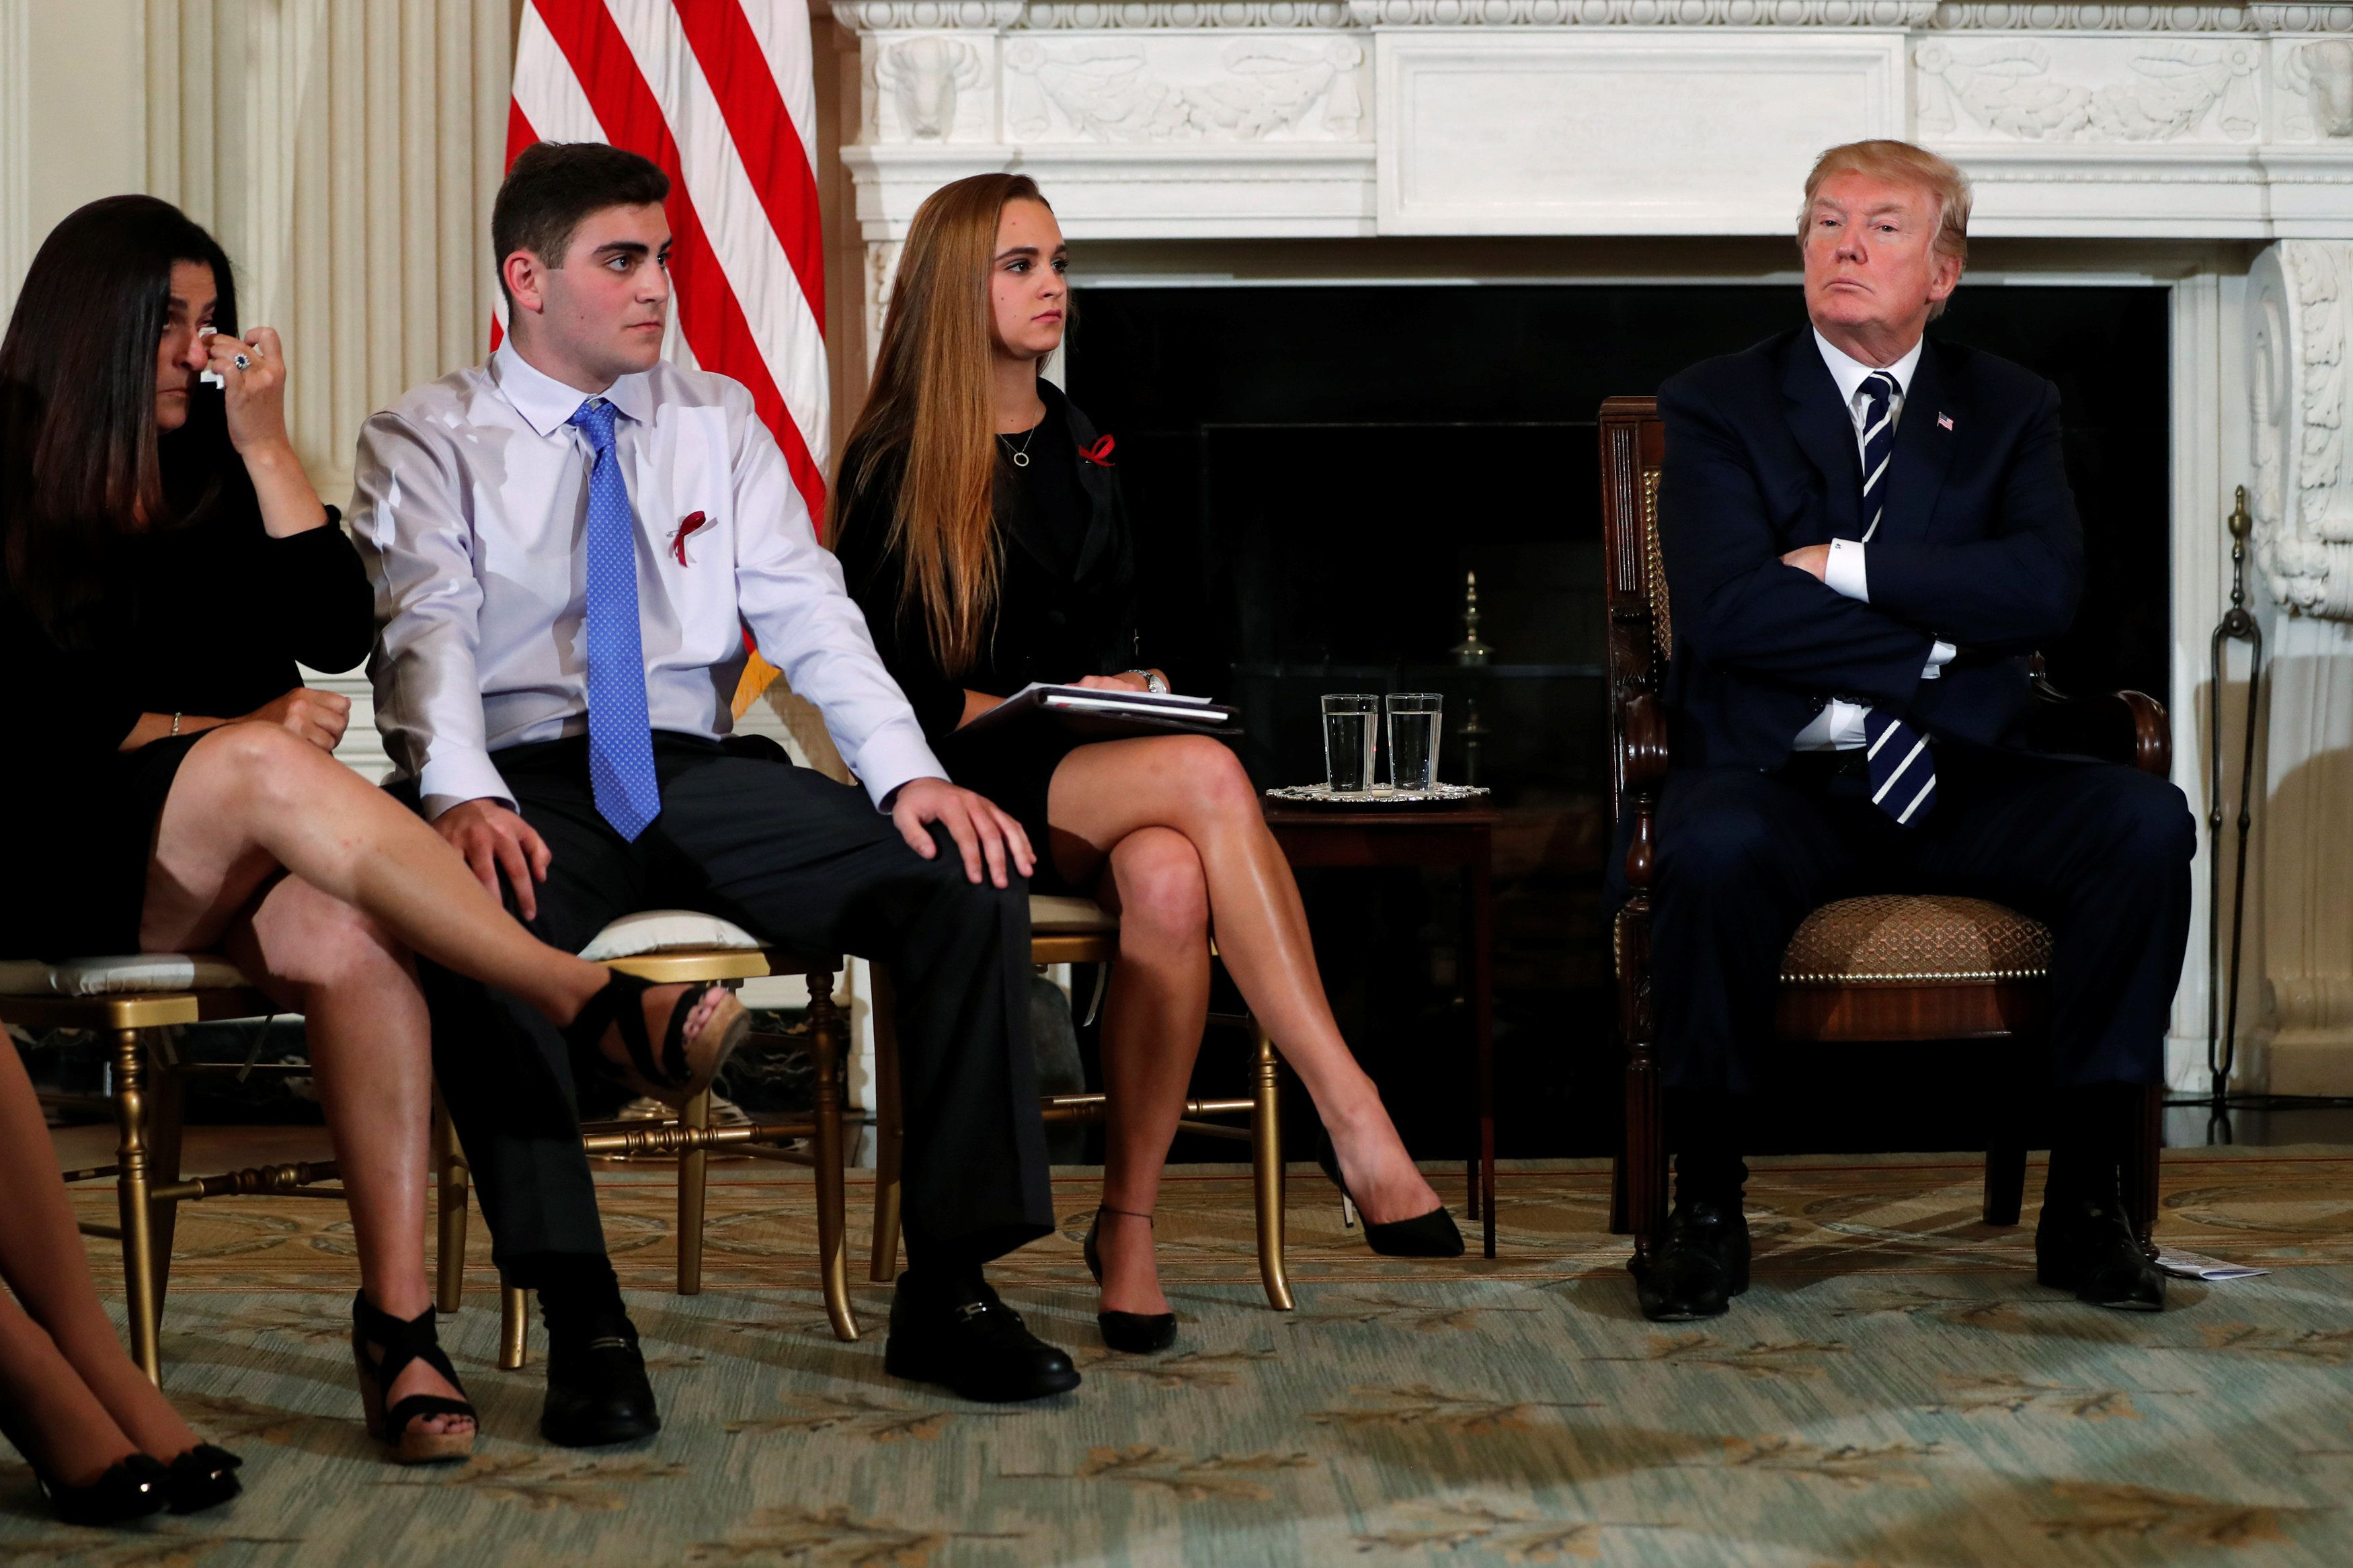 Parent Melissa Blank (L) and Marjory Stoneman Douglas High School shooting surviving students Jonathan Blank (2nd L) and Julia Cordover (2nd R) attend with other survivors and the families of victims a listening session held by U.S. President Donald Trump to discuss school safety and shootings, at the White House in Washington, U.S., February 21, 2018. REUTERS/Jonathan Ernst